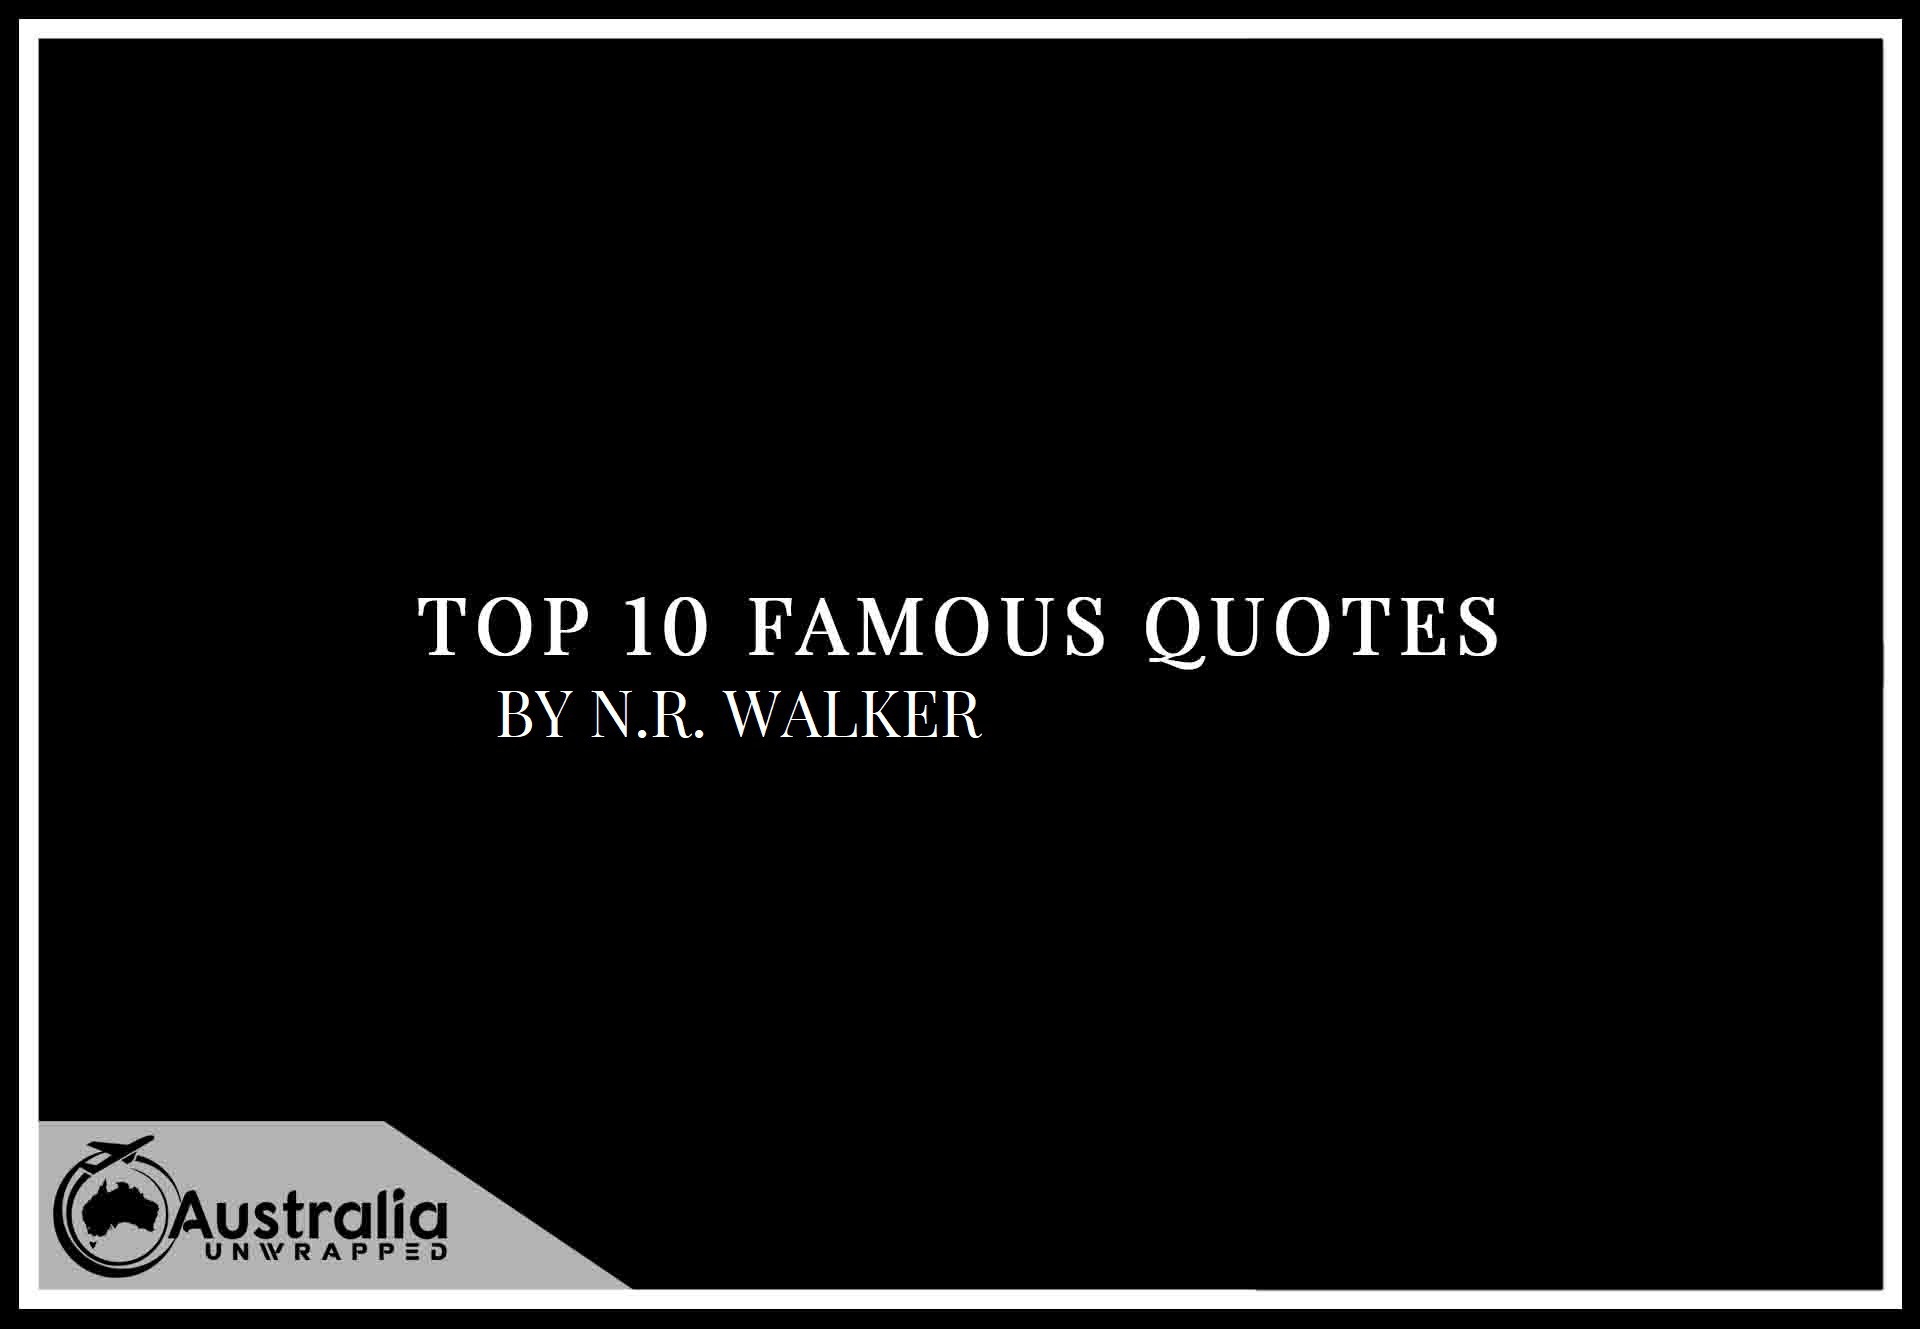 Top 10 Famous Quotes by Author N.R. Walker